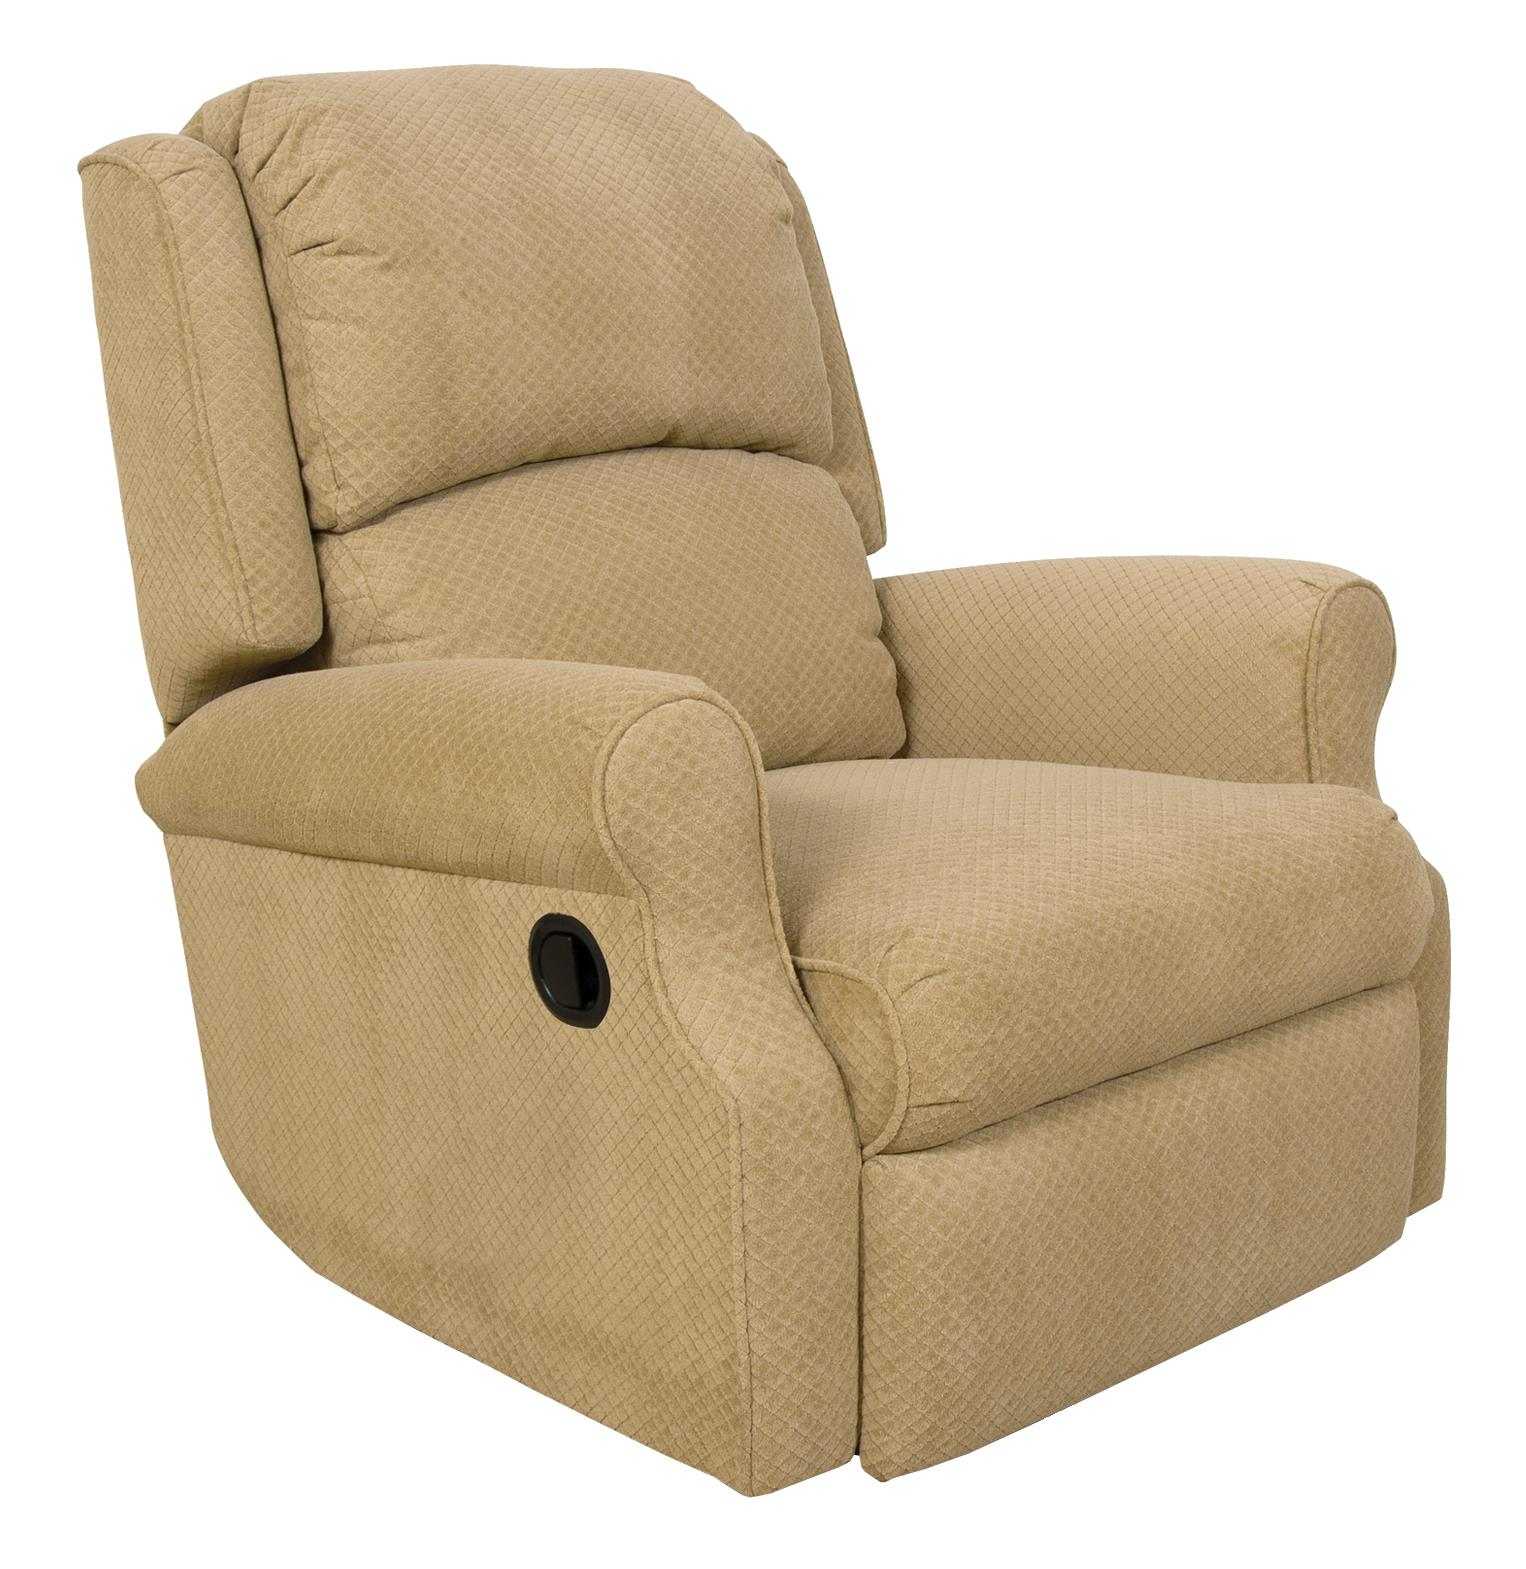 Lift Chairs Recliners England Marybeth Medical Style Reclining Lift Chair With